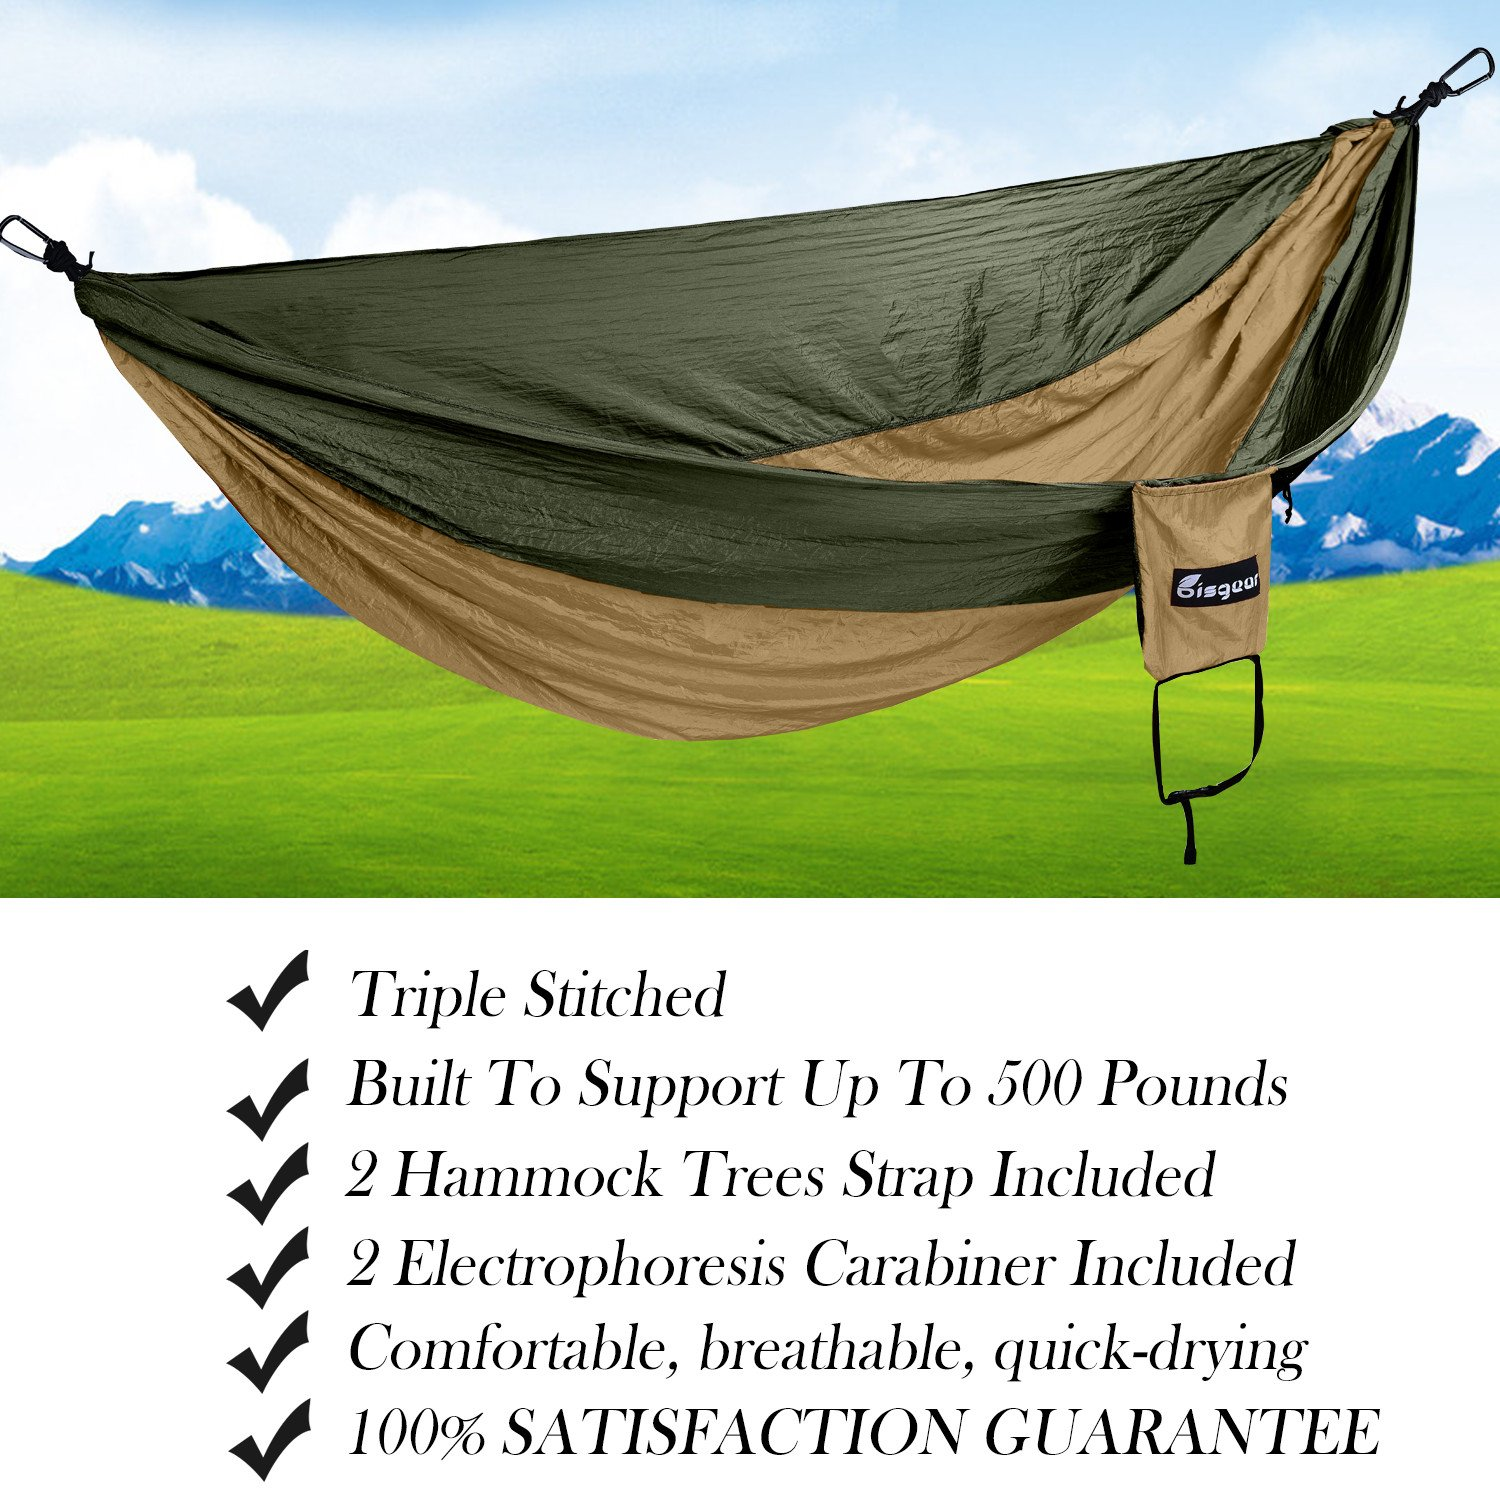 Double Single Camping Hammock Lightweight Image 2